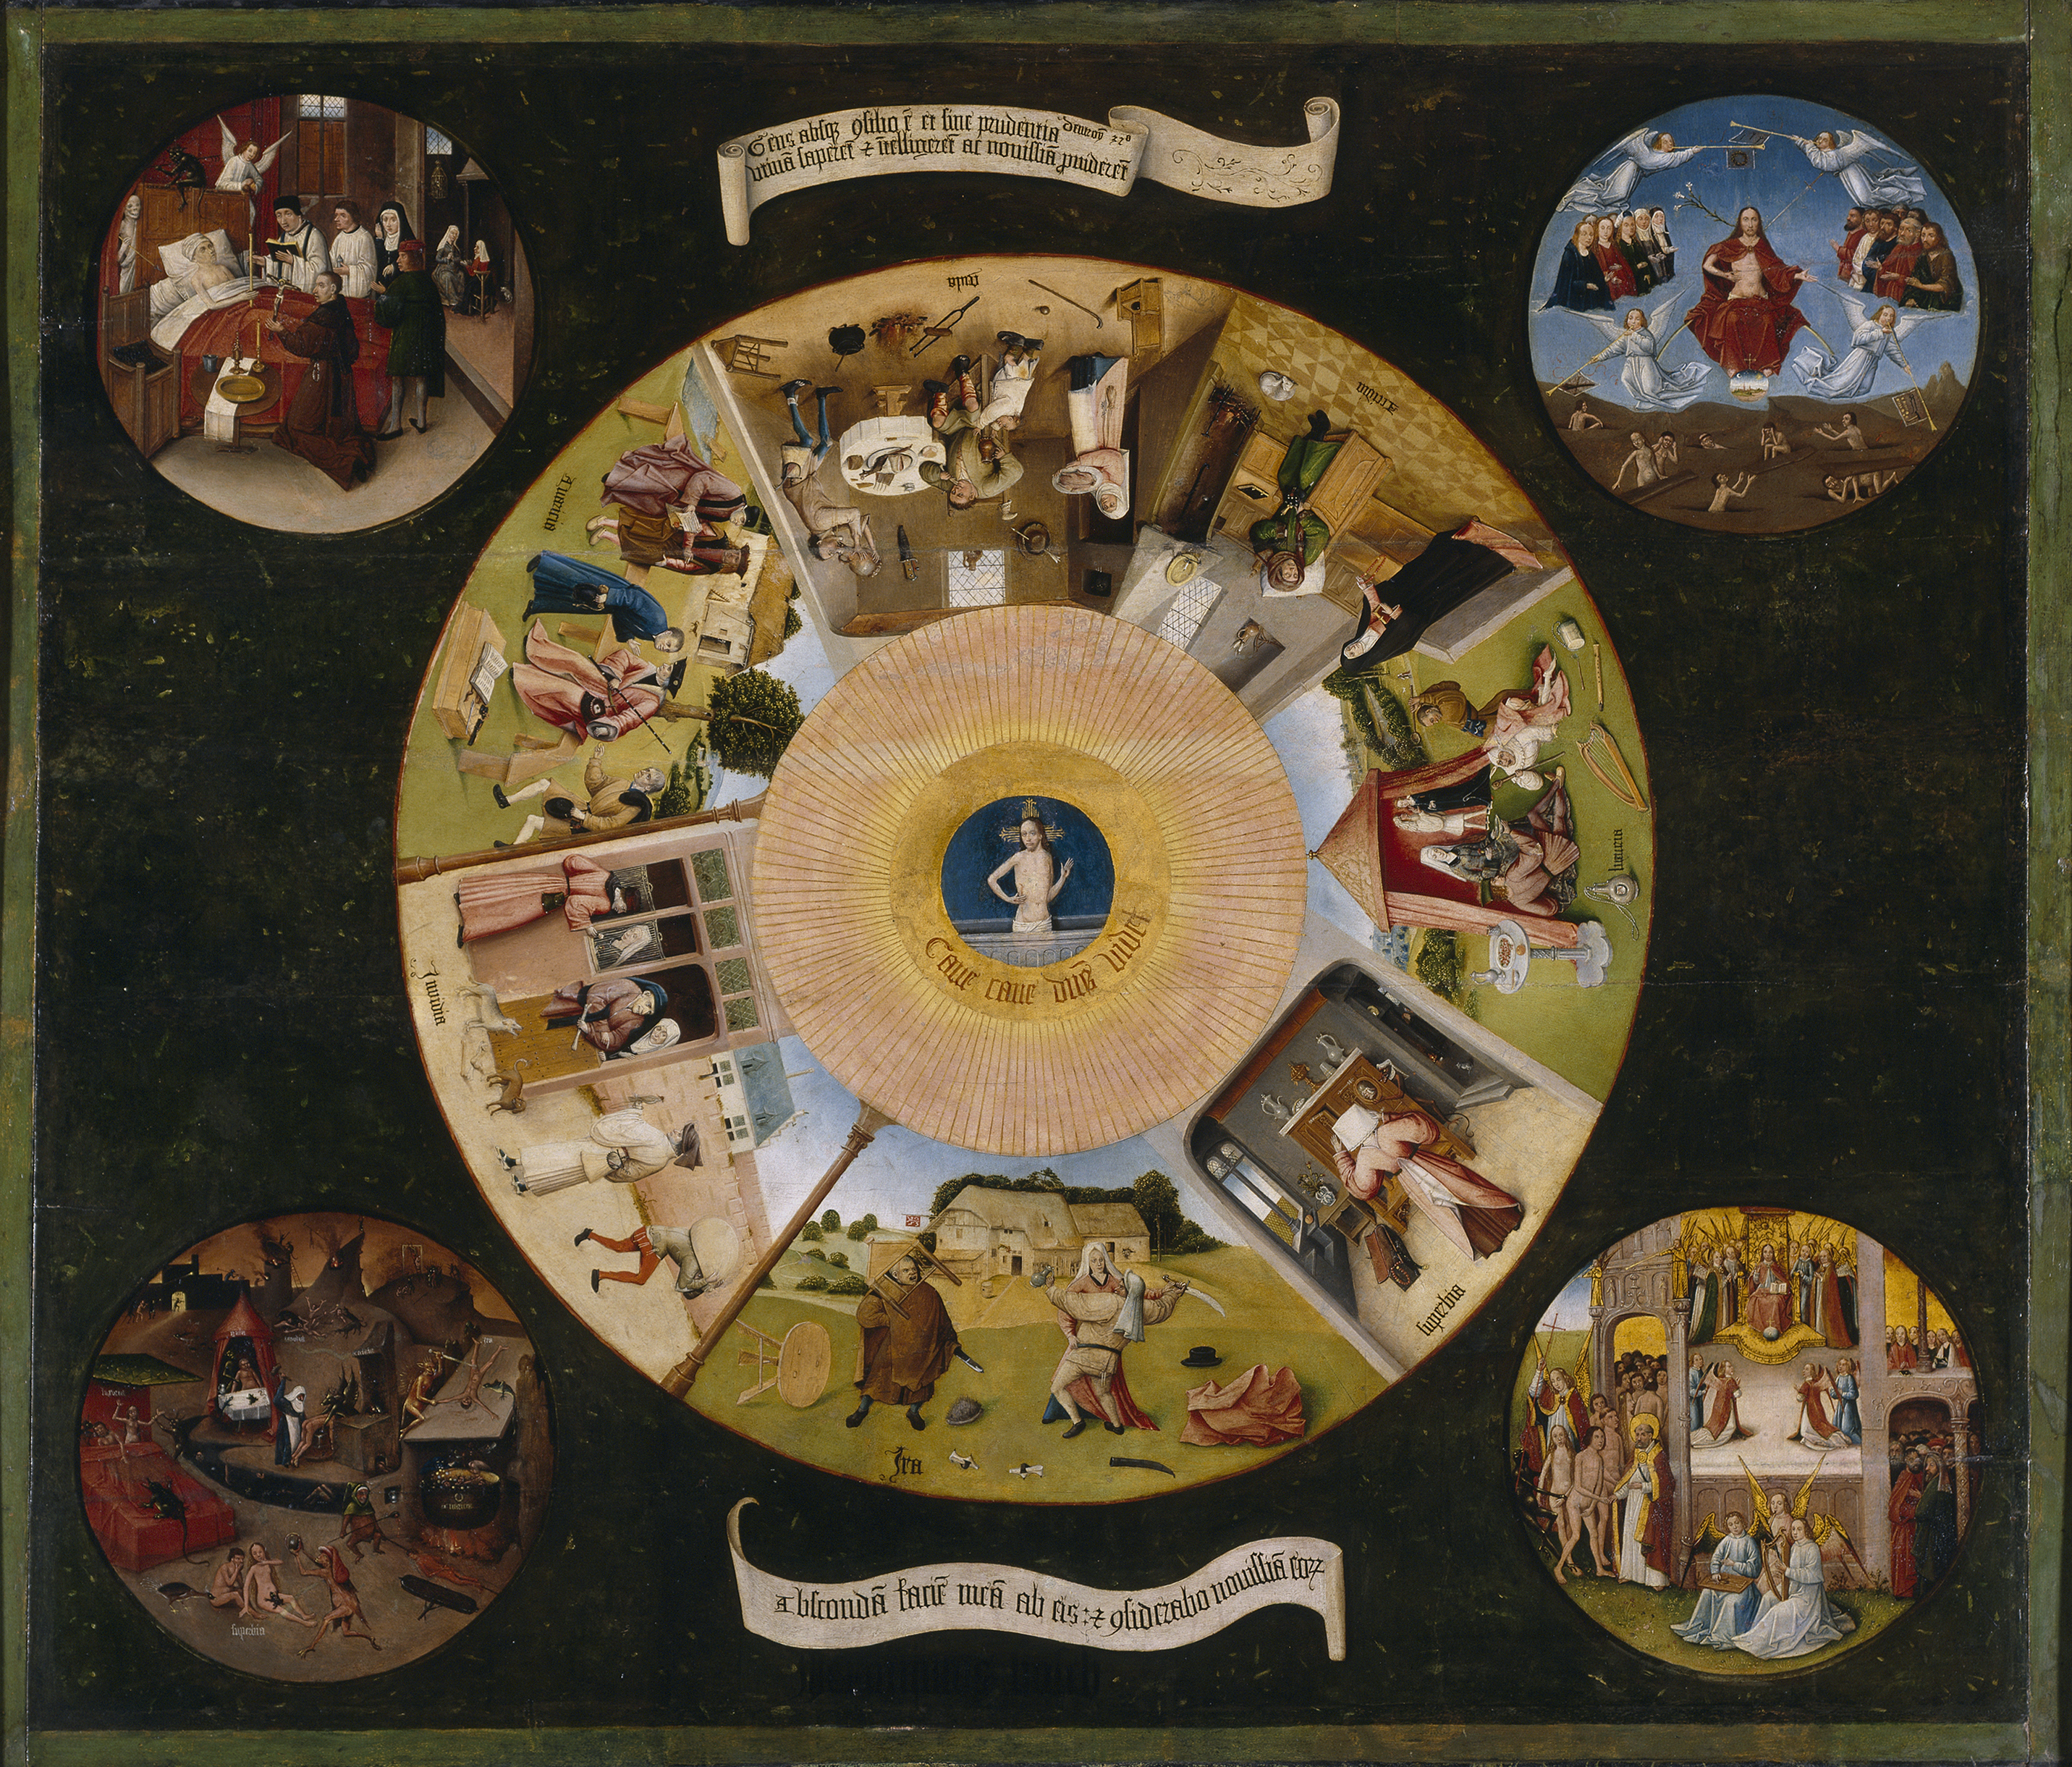 http://upload.wikimedia.org/wikipedia/commons/0/03/Hieronymus_Bosch-_The_Seven_Deadly_Sins_and_the_Four_Last_Things.JPG